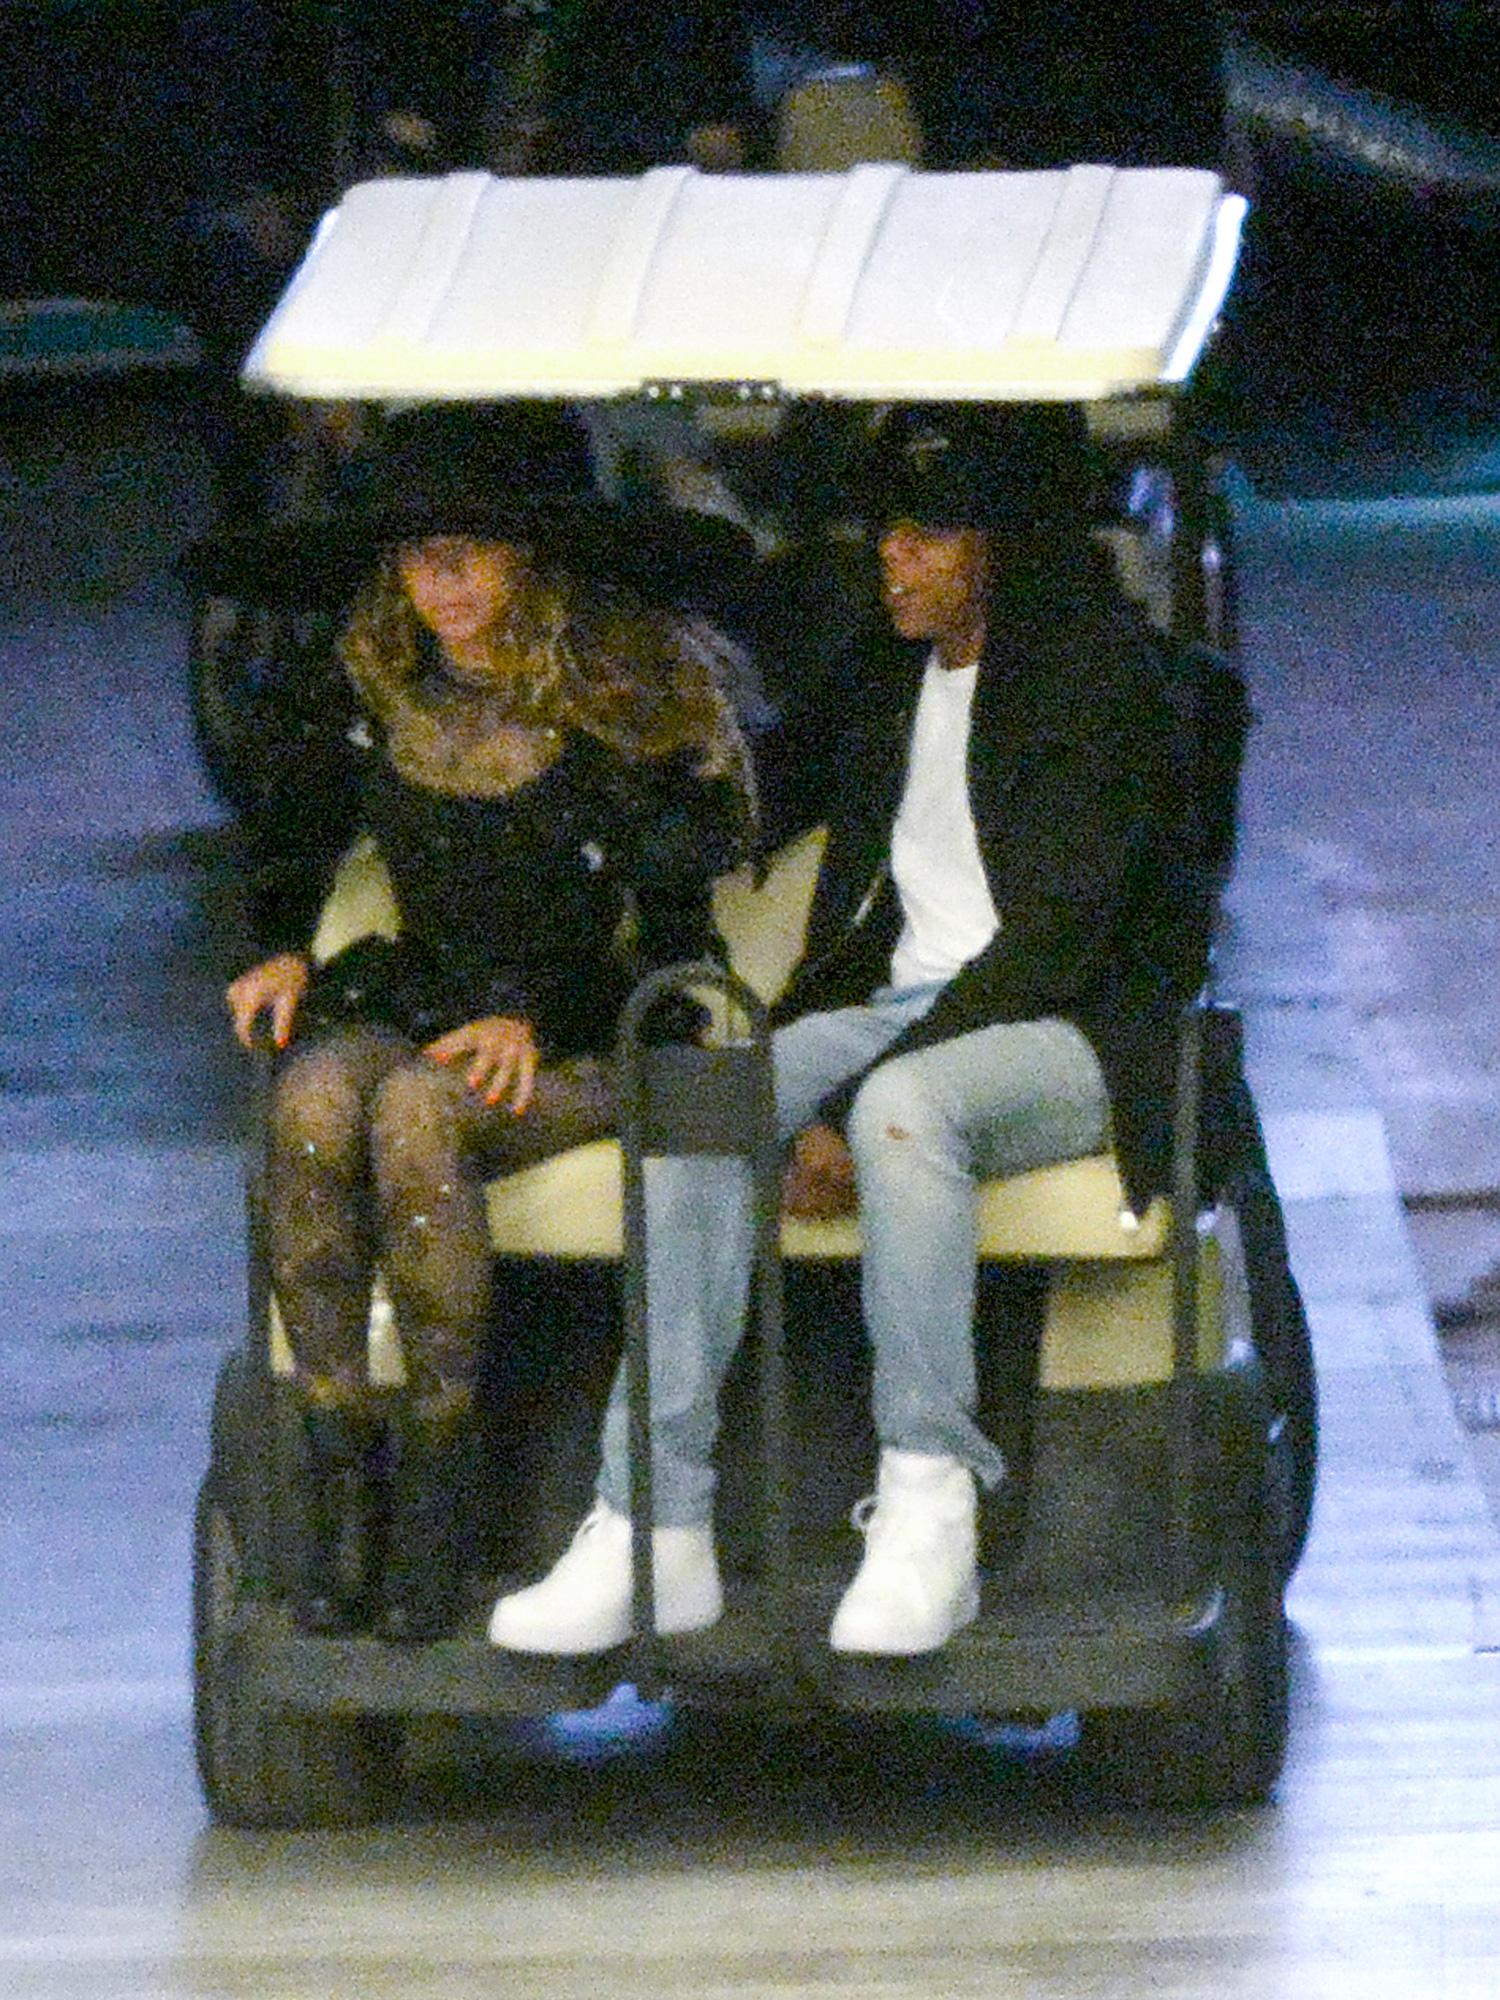 EXCLUSIVE TO INF. April 26, 2016: Jay-Z and Beyonce put on a a show of unity, amid reports of his infidelity to her, as they are photographed together during rehearsals for her upcoming tour. Beyonce and Jay-Z ride together on a golf cart during rehearsals for the first show of The Formation World Tour at Marlins Park in Miami, Florida. Beyonce's mother Tina Knowles is seen on the first golf cart. Beyonce arrived at 11am and continued rehearsing for over 14 hours, past 2am. Jay Z arrived separately at 4pm and left at midnight. Mandatory Credit: INFphoto.com Ref: infusmi-24